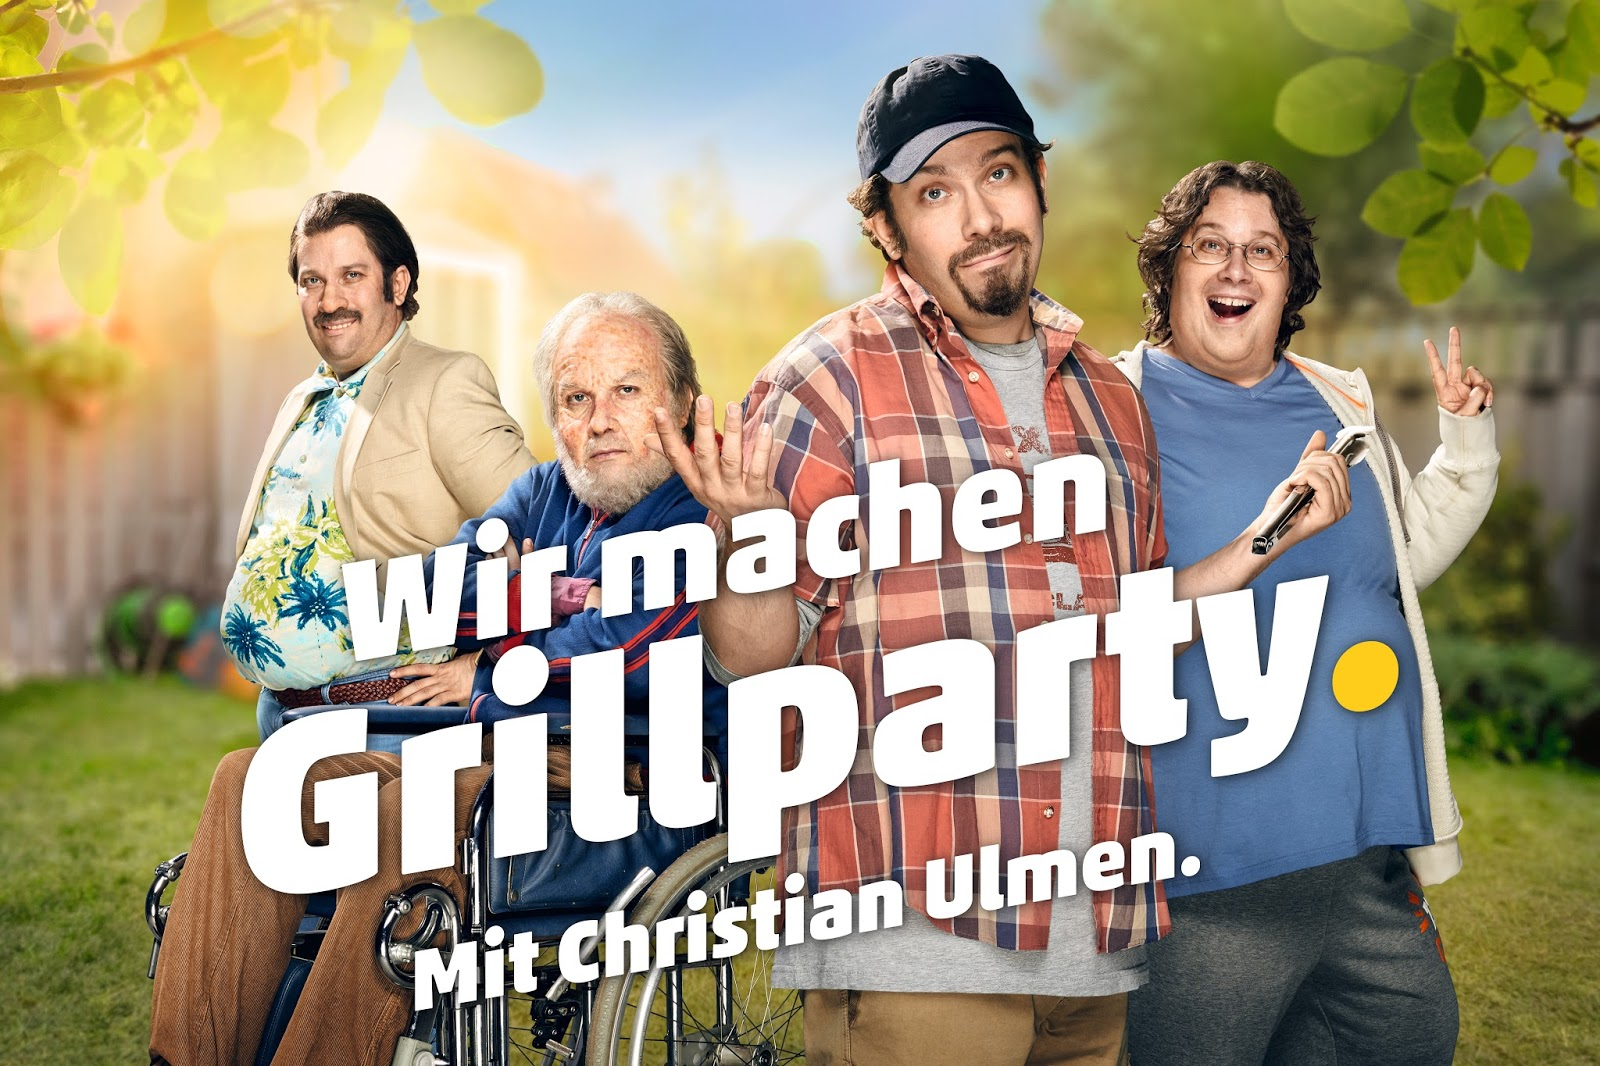 CHRISTIAN ULMEN X PENNY IN 'ANDY PACKT AUS' | WIR MACHEN GRILLPARTY WEBISODE 5